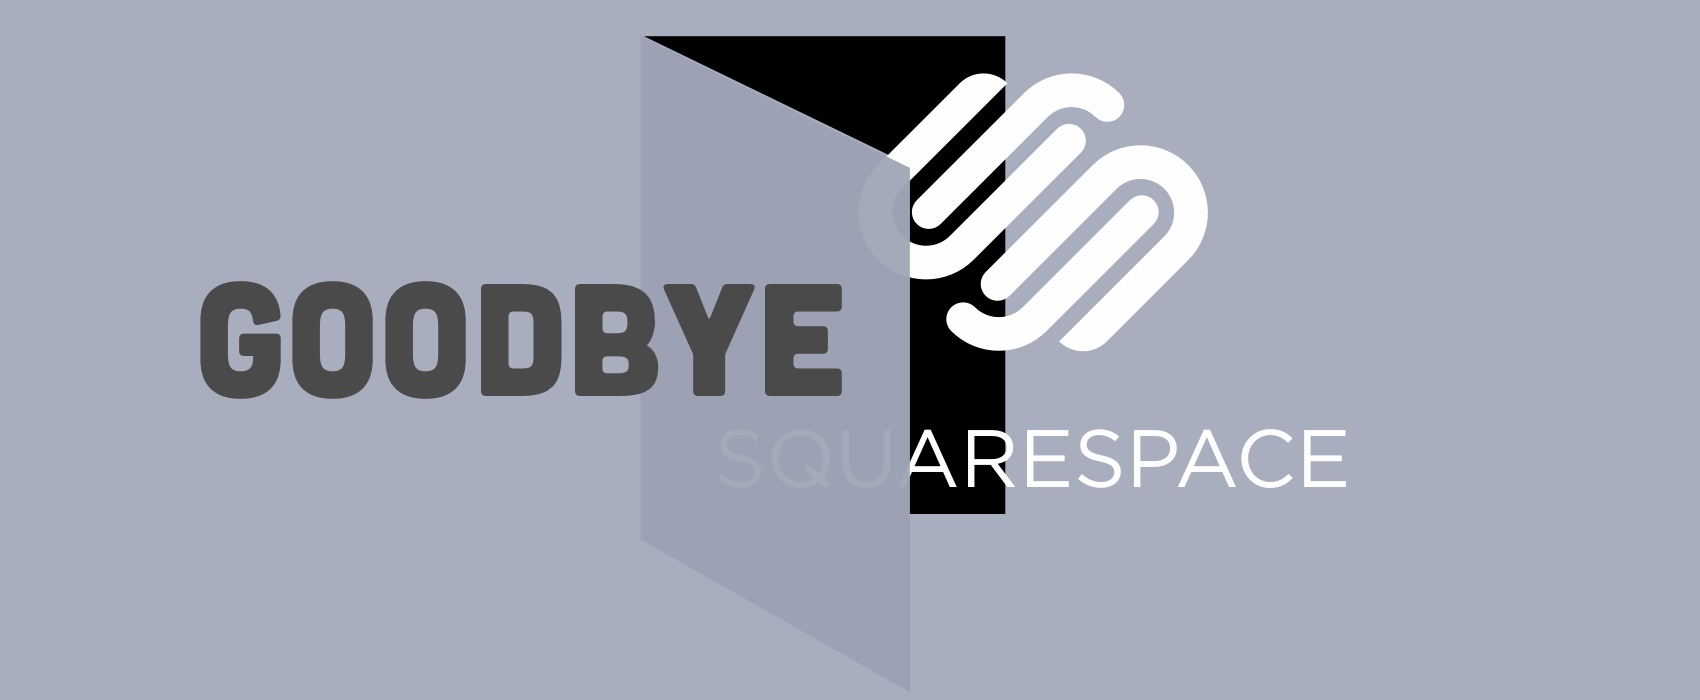 Why We Moved Our Site Off of Squarespace